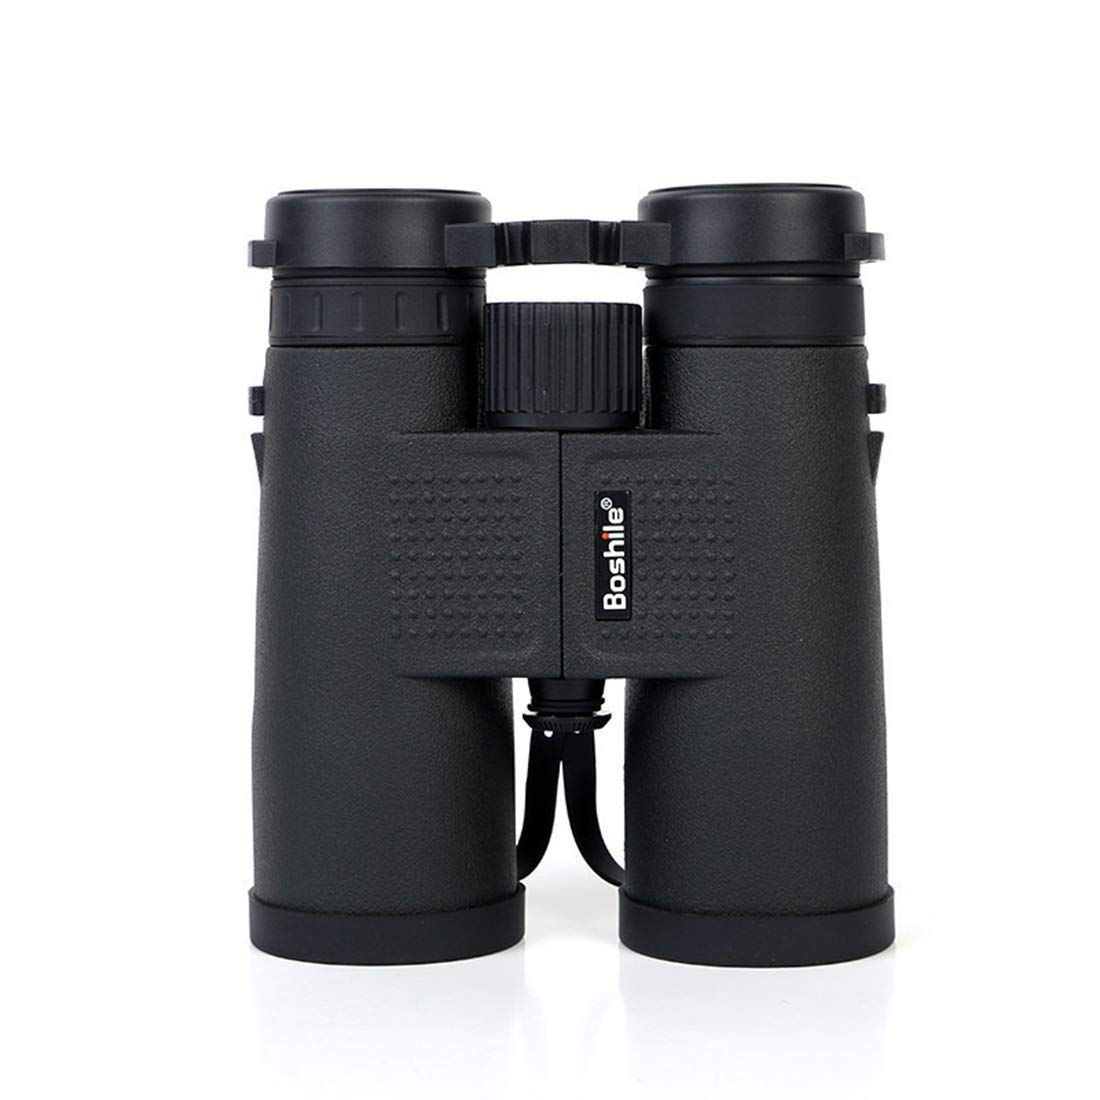 GRJWYJ Binoculars, Big Concert HD Outdoor, Wide View, Kids Adults Birdwatching Outdoor, Fishing, Hiking, Traveling, Hunting, Best Choice 10x42 by GRJWYJ